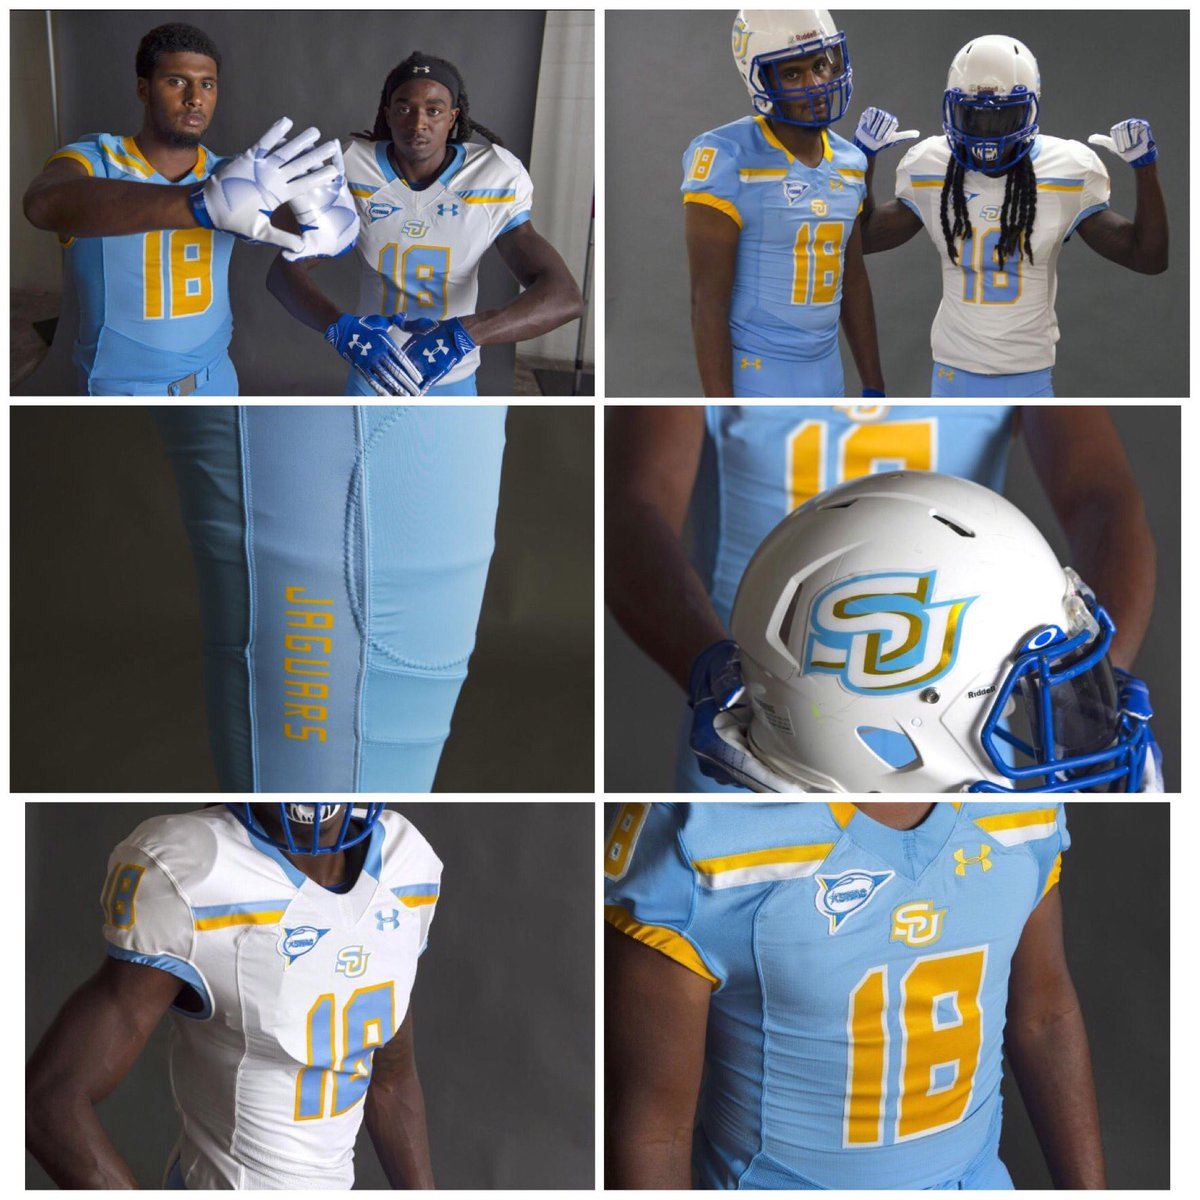 MEAC SWAC SPORTS MAIN STREET™  First look  Southern brings fresh ... b7d267075